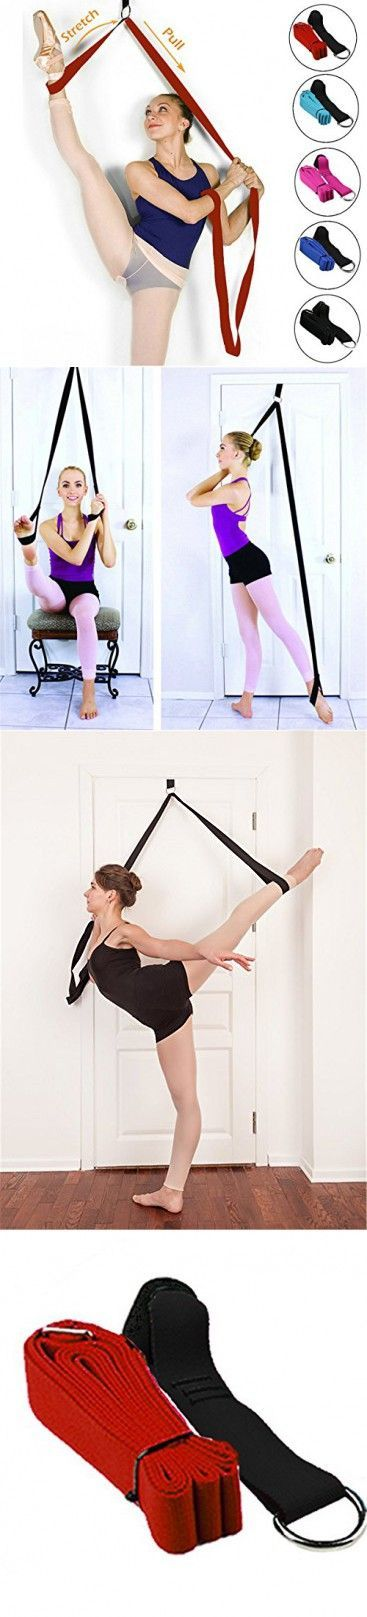 Door Stretch Band - Get More Flexible With The Door Flexibility Trainer To Improve Leg Stretching - Perfect Home Equipment For Ballet, Dance And Gymnastic Exercise taekwondo & MMA (Red)